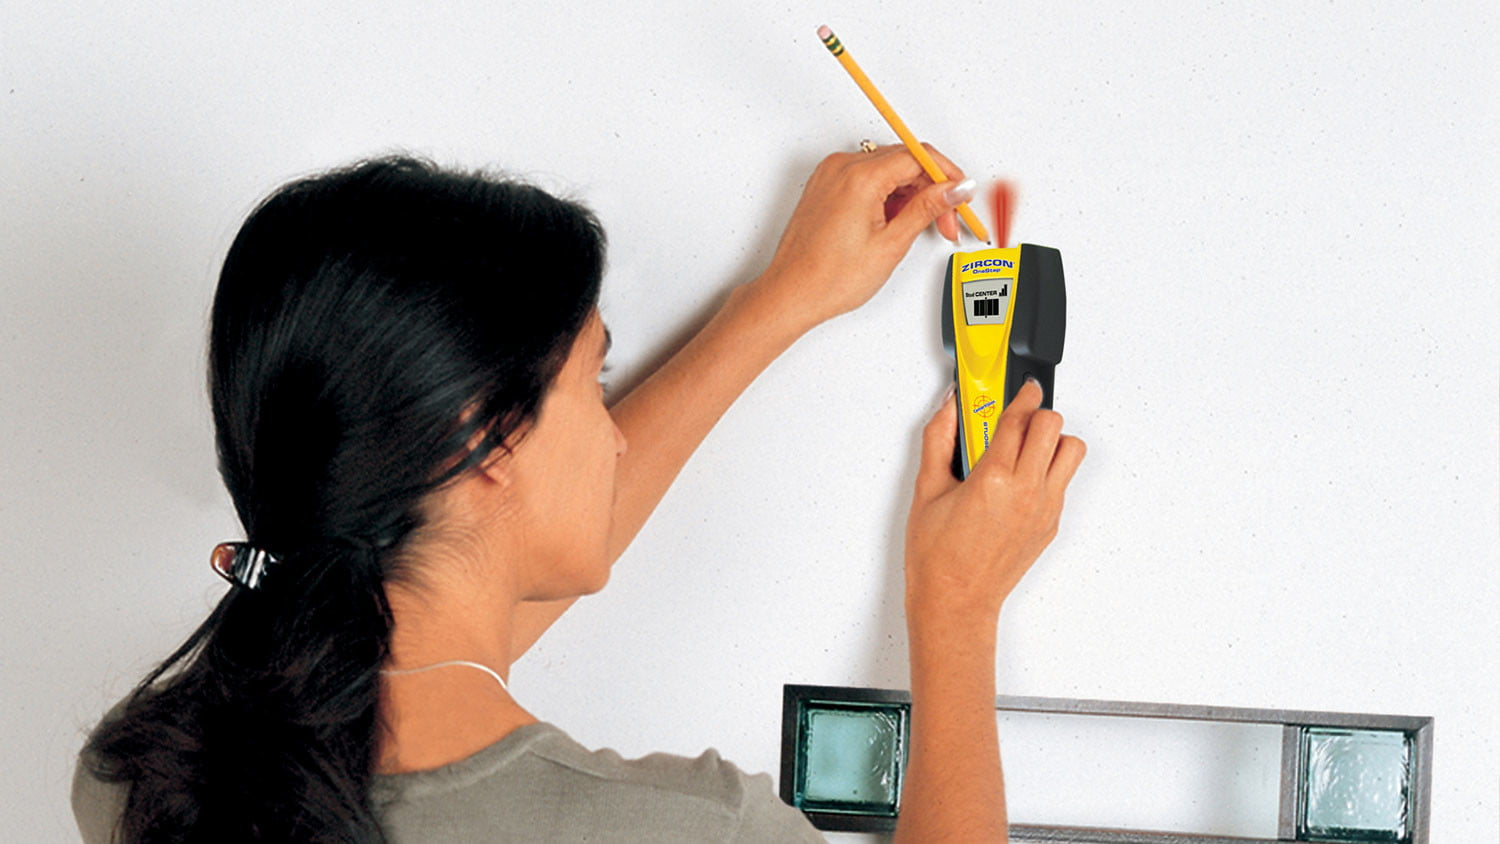 Dewalt Stud Finder Instructions